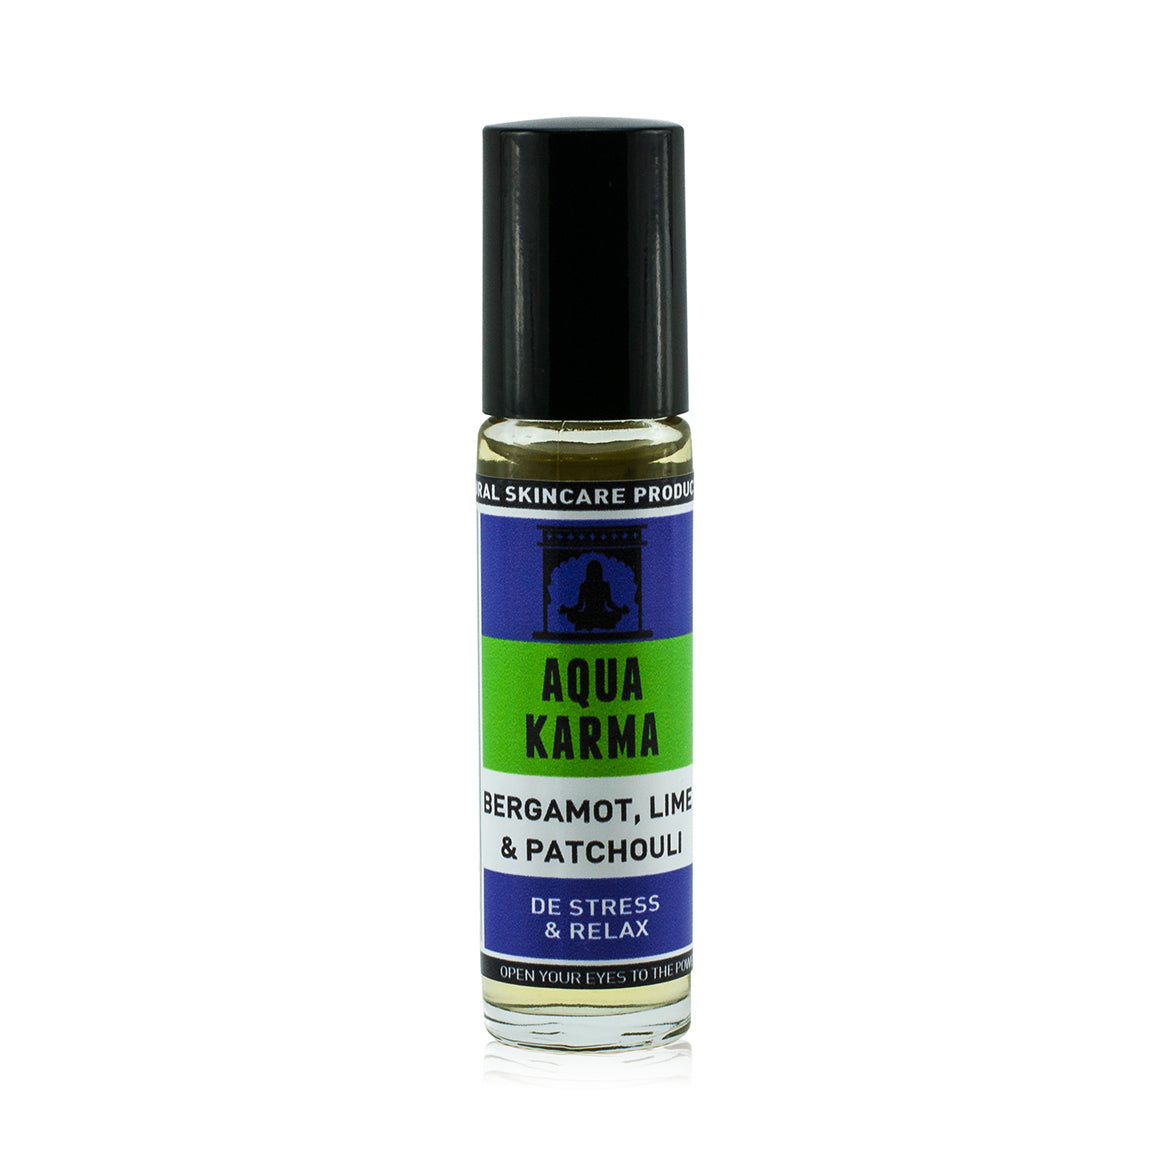 Natural vegan skincare 'Aqua Karma' essential oil mood roller with patchouli, bergamot and lime by WiDEYE.